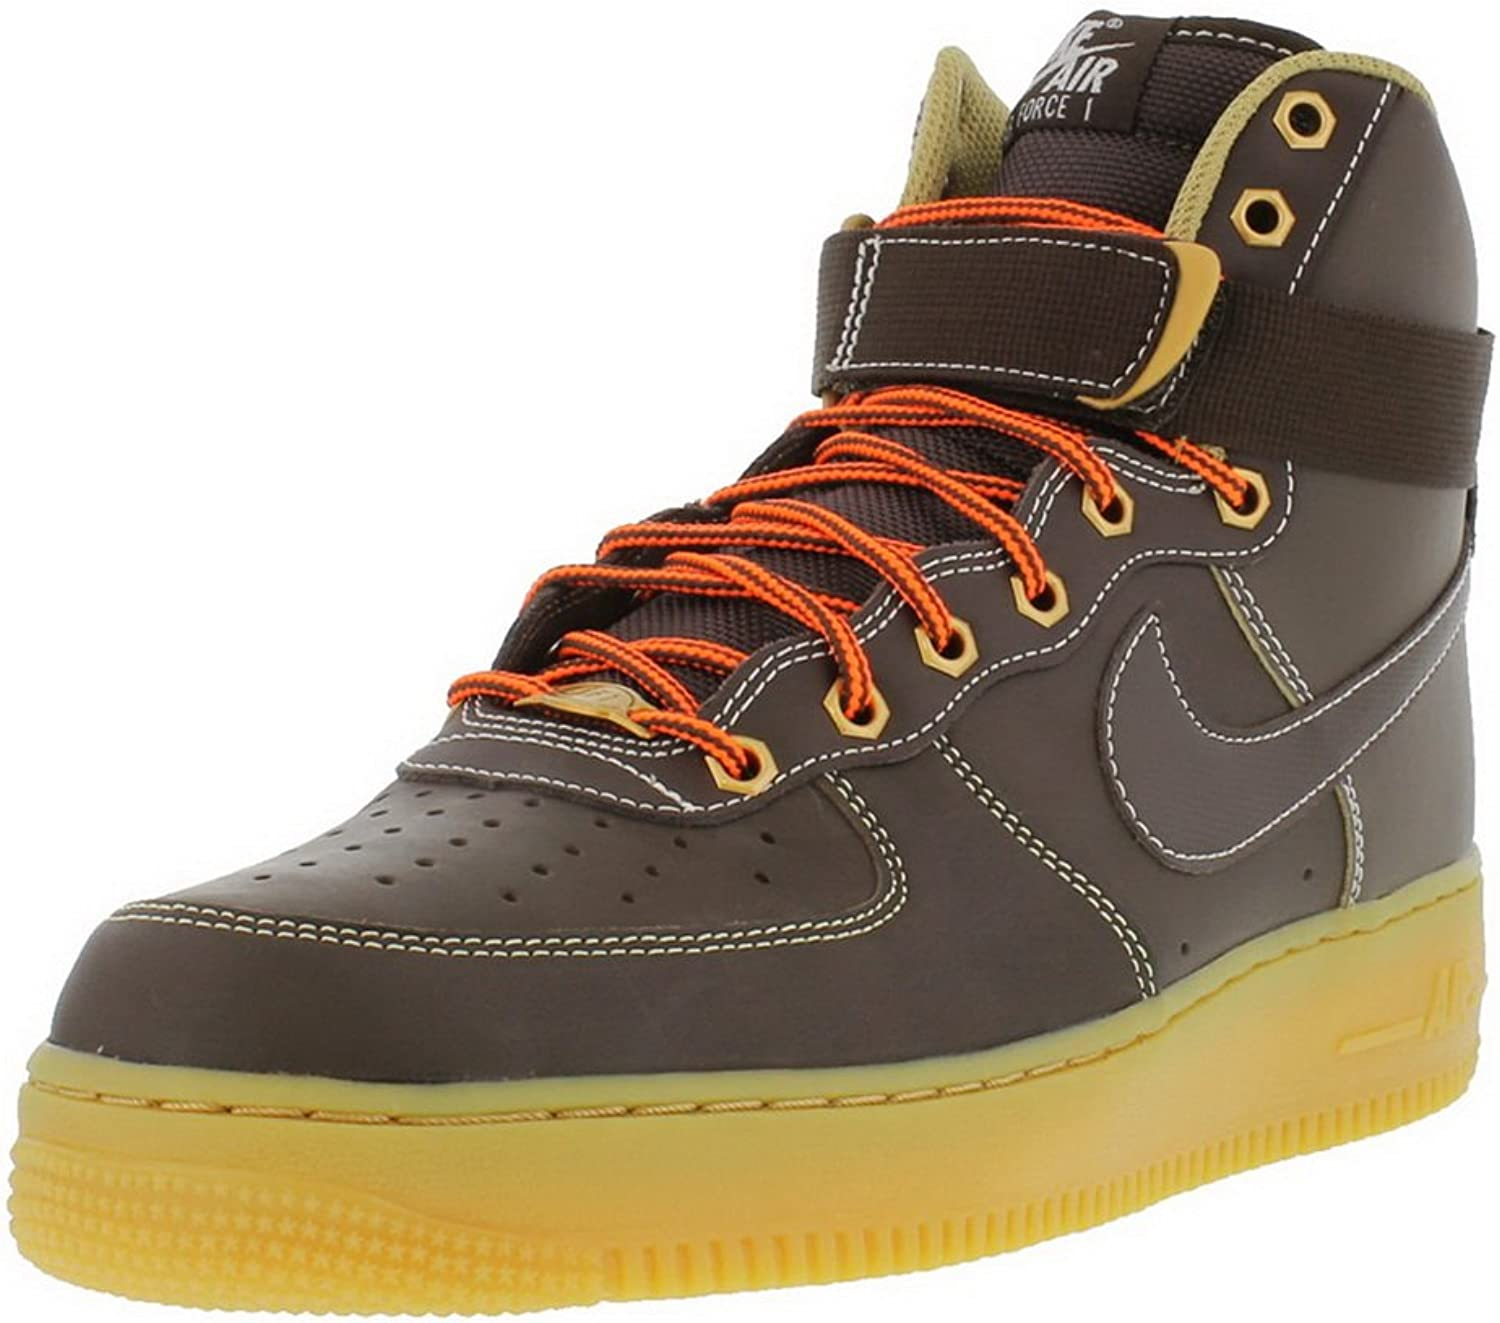 Nike Men's Air Force 1 High 315121-203 Trainers Brown